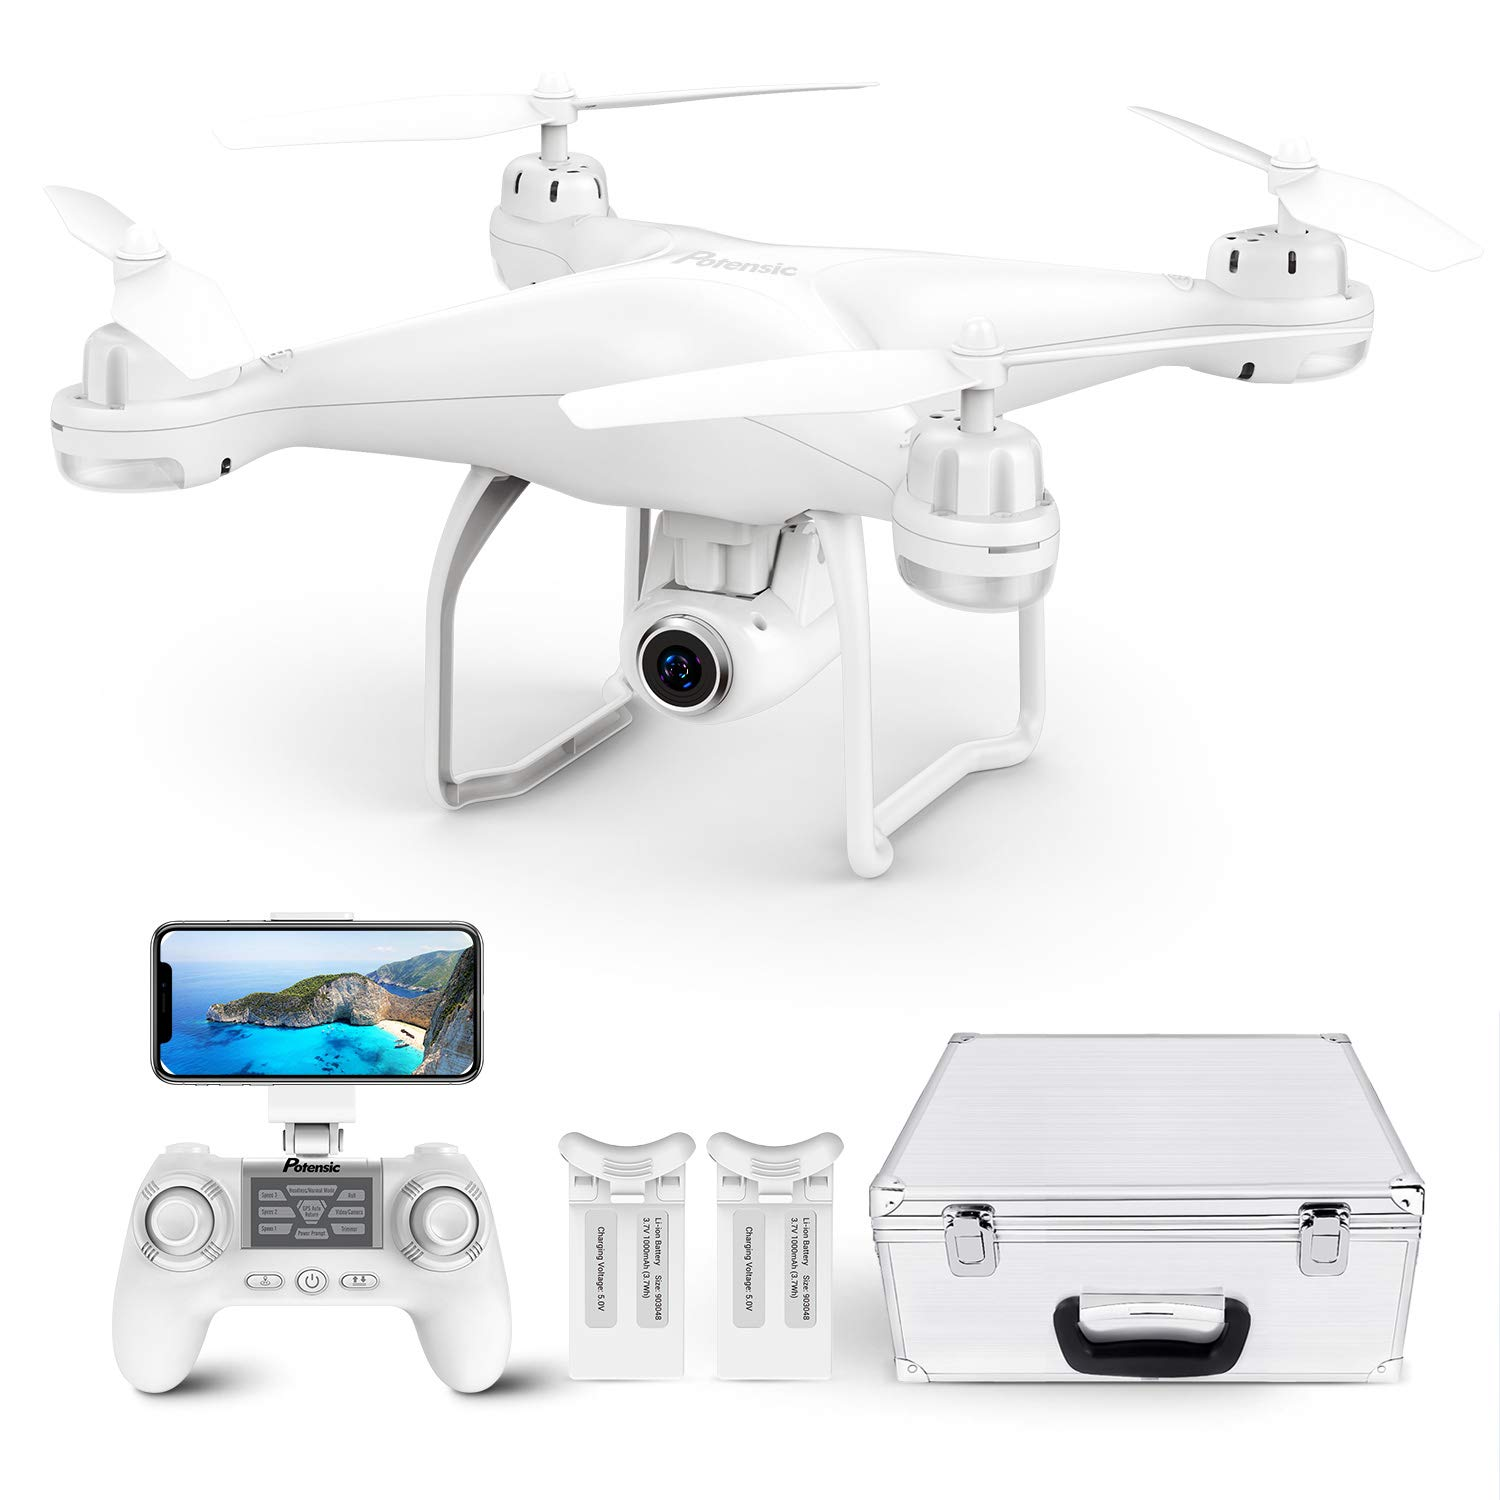 Potensic T25 GPS Drone, FPV RC Drone with Camera 1080P HD WiFi Live Video, Auto Return Home, Altitude Hold, Follow Me, 2 Batteries and Carrying Case review